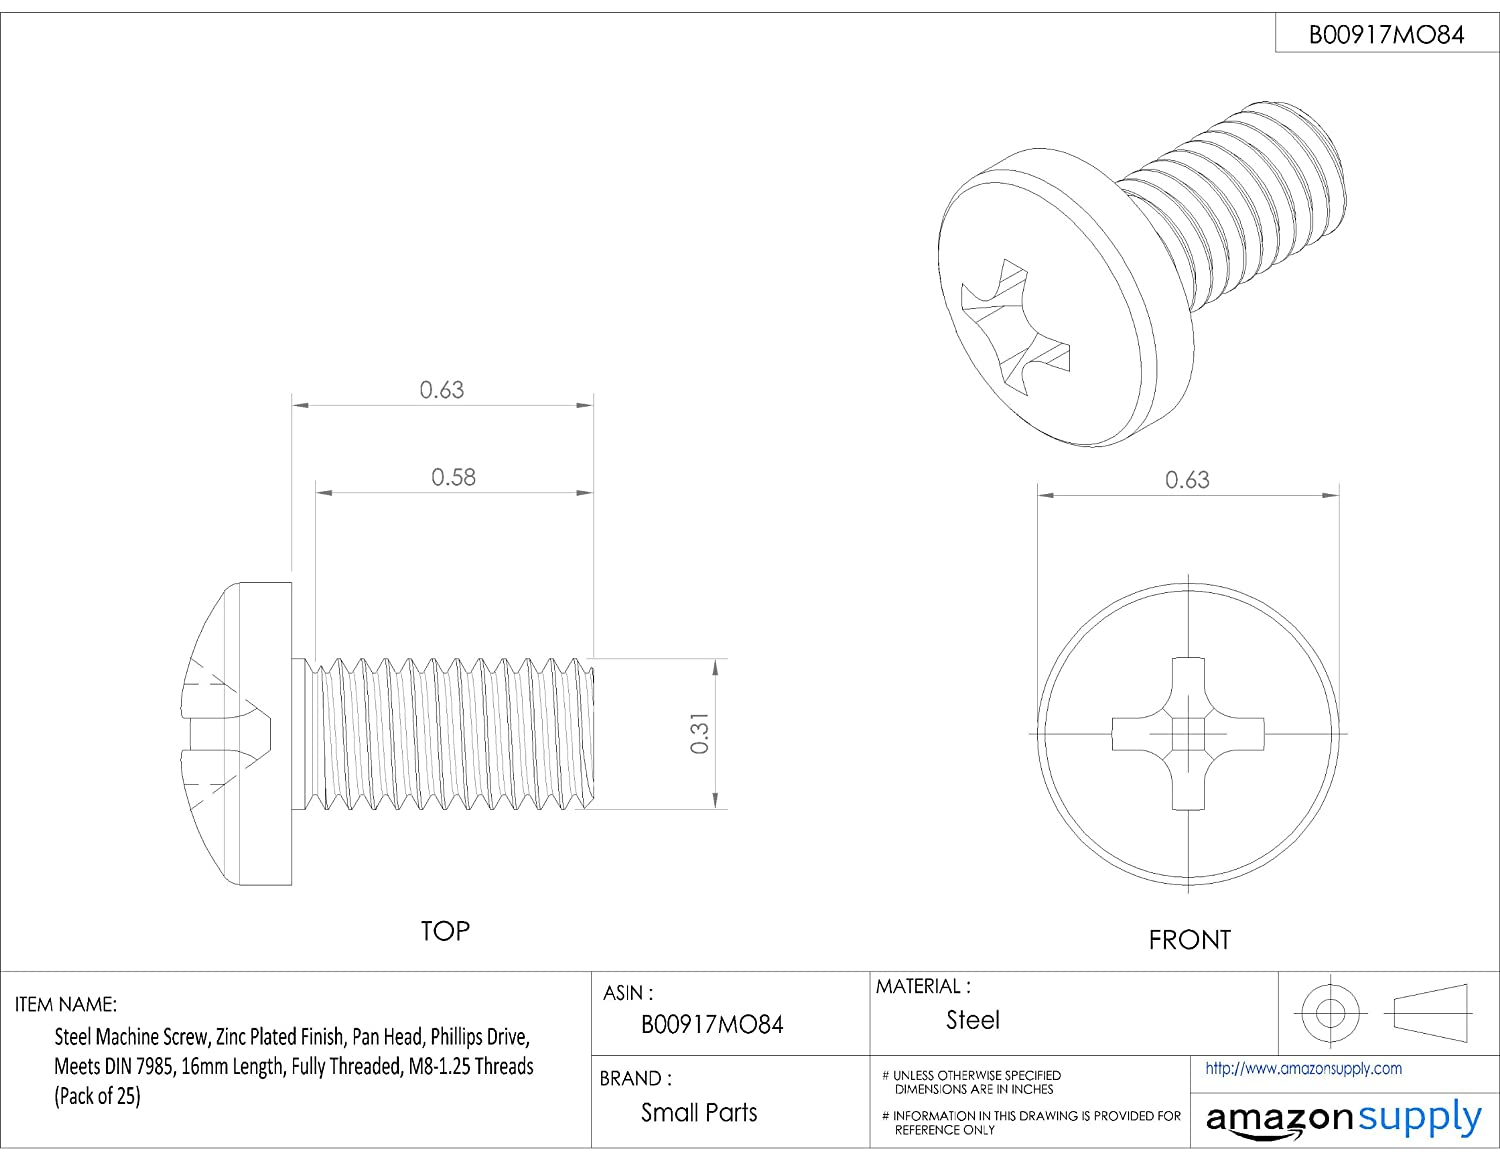 Pan Head Phillips Drive Steel Machine Screw Meets DIN 7985 30mm Length Zinc Plated Finish Fully Threaded M3.5-0.6 Metric Coarse Threads Pack of 25